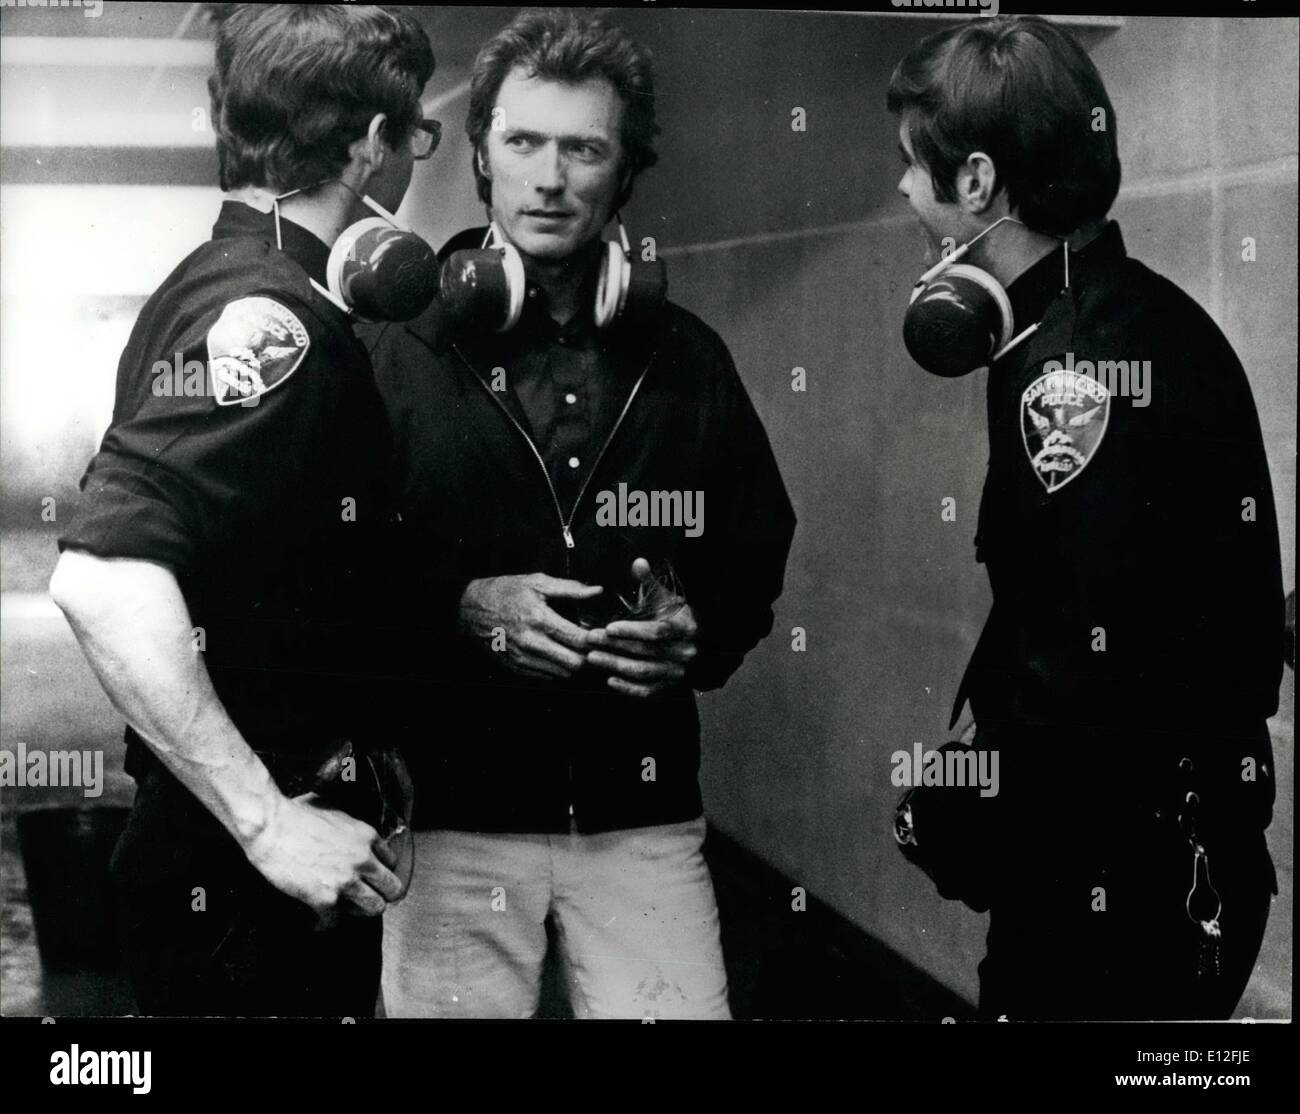 Dec. 26, 2011 - New Thriller For Clint Eastwood: Clint Eastwood has been busy making a new film thriller. Called ''Magnum Force'', the pictured described as a police shocker. It tells the story of a police force that executes its own suspects without due process of law. Clint is, of Course, one of the good guys. Photo Shows Clint Eastwood discusses his role with police in San Francisco. - Stock Image